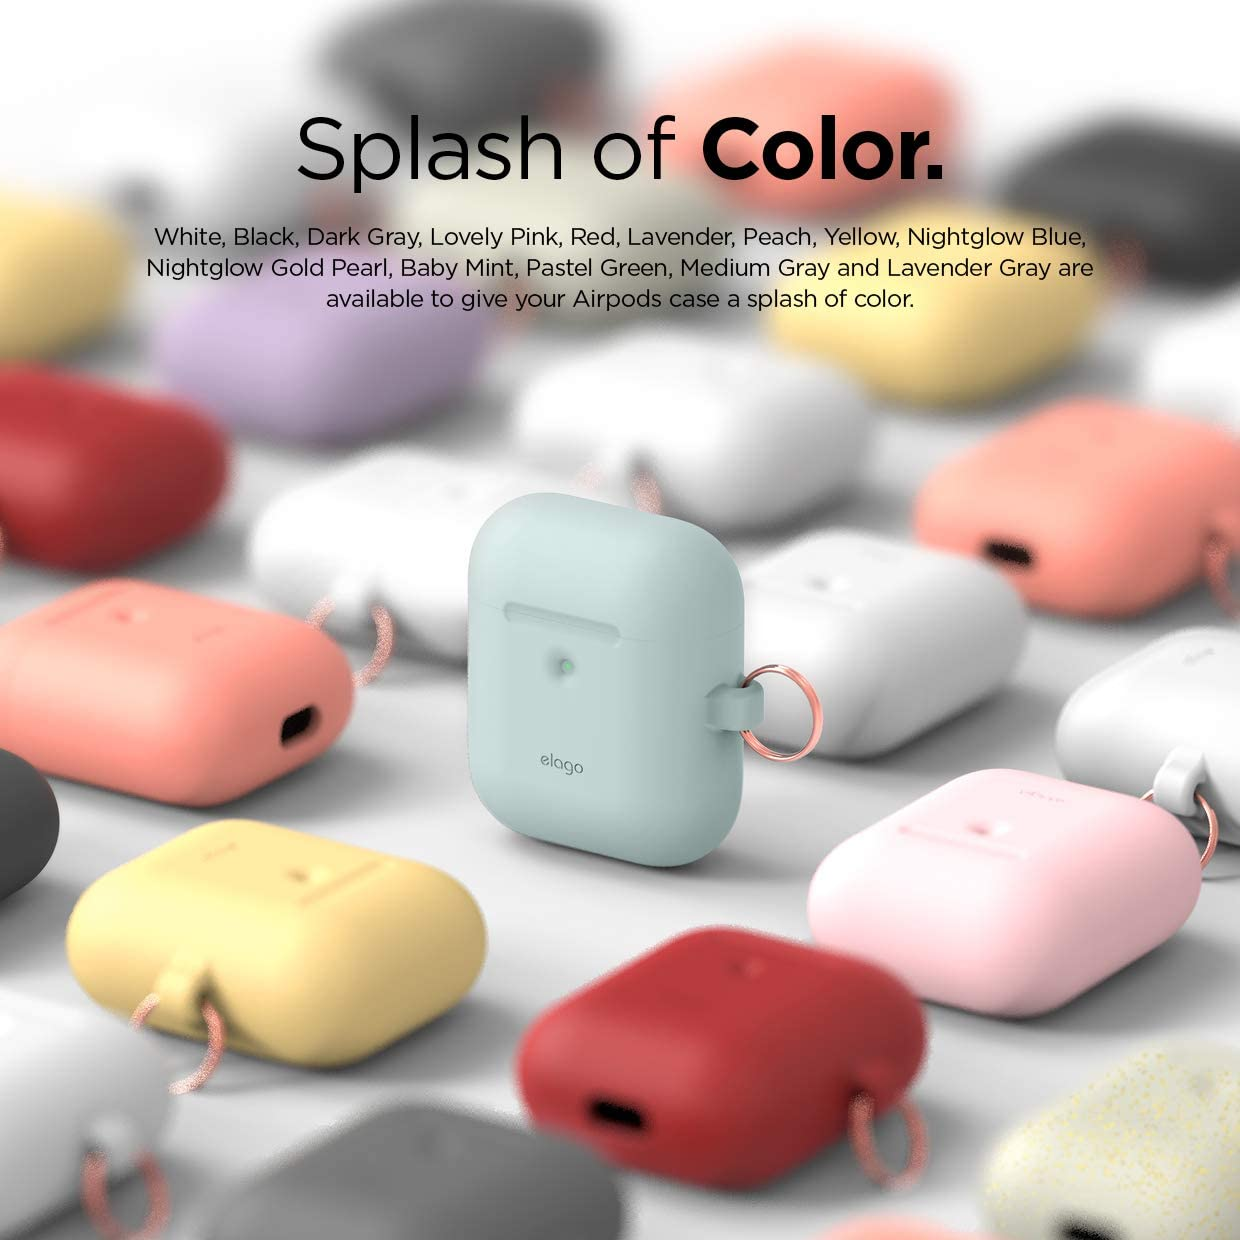 Cute Design With Carabiner Front LED Visible Shock /& Scratch-Resistant Supports Wireless Charging Baby Mint elago AirPods Case Cover- Compatible with Apple AirPods 2 Case 2019 Latest Model Non-Slip Protection Silicone Material